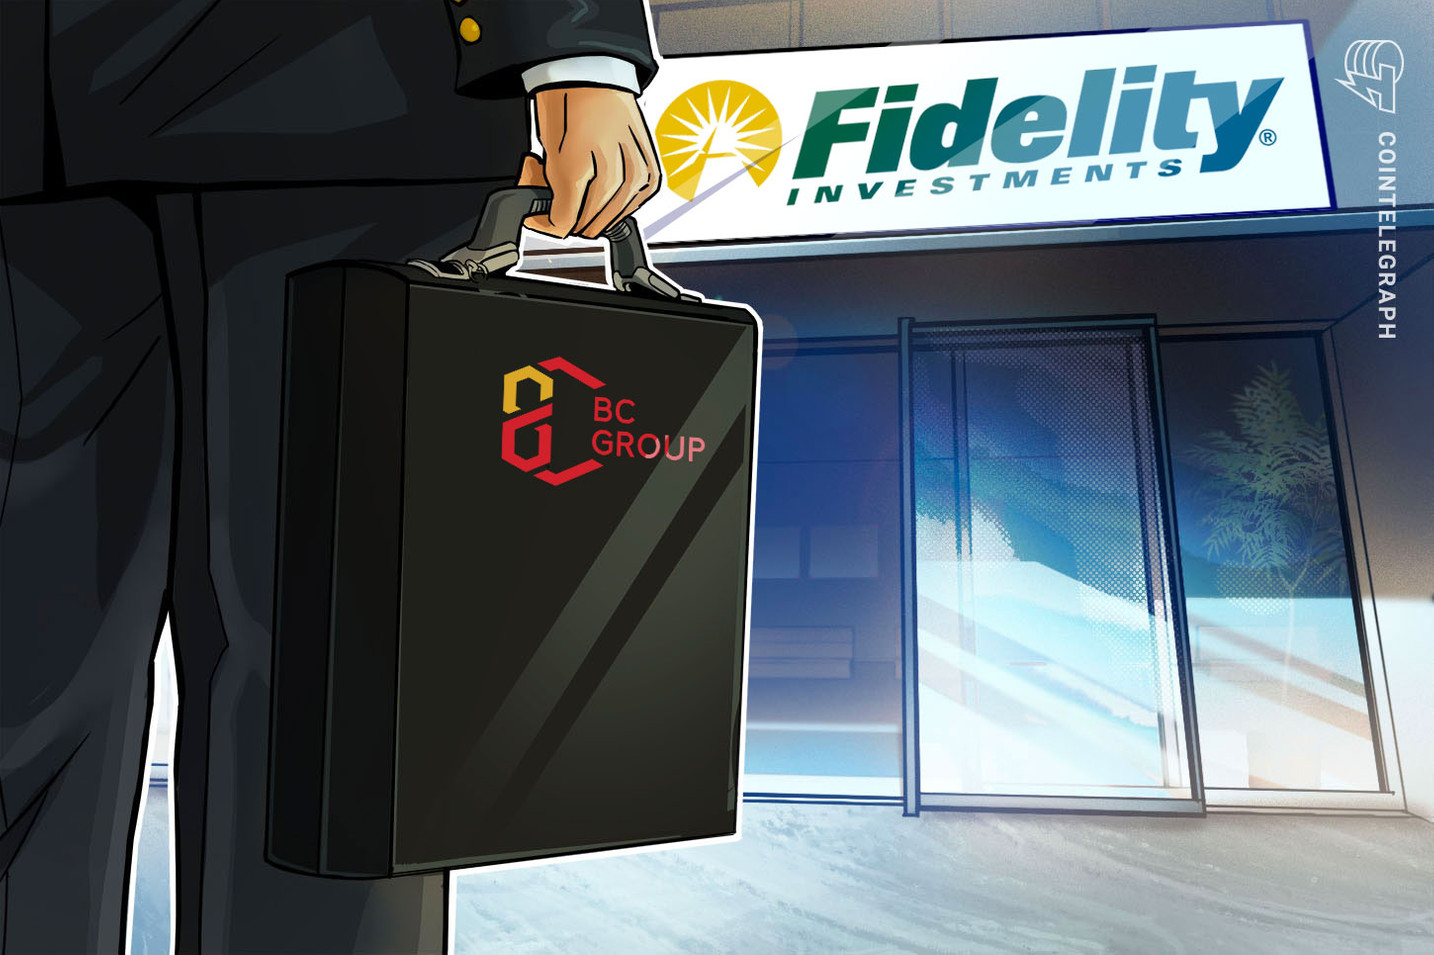 Fidelity International invierte en BC Group de Hong Kong